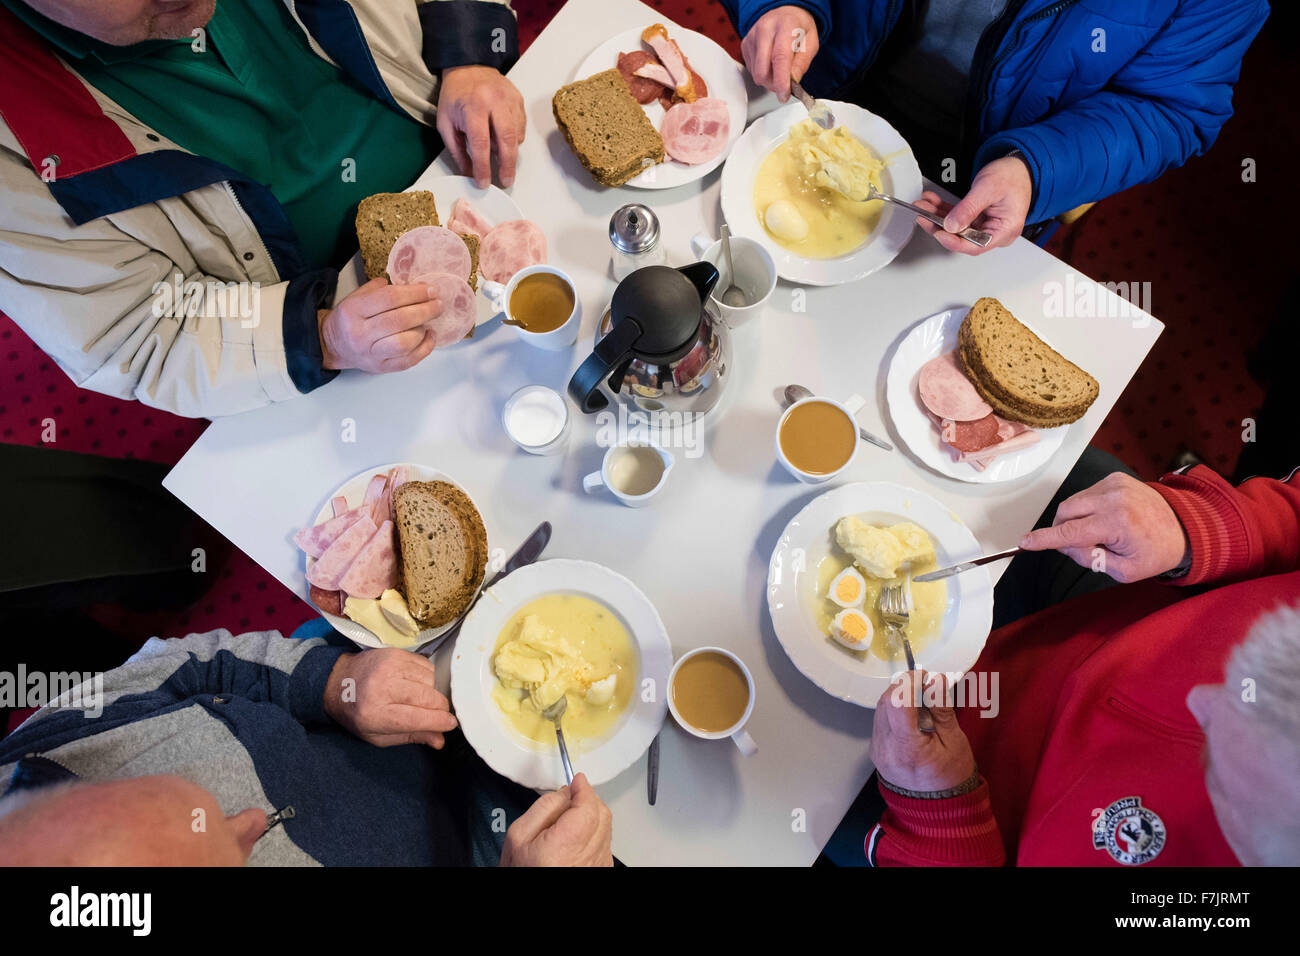 Berlin, Germany. 01st Dec, 2015. People in need eat at a table in the warm room of the aid organisation Caritas - Stock Image